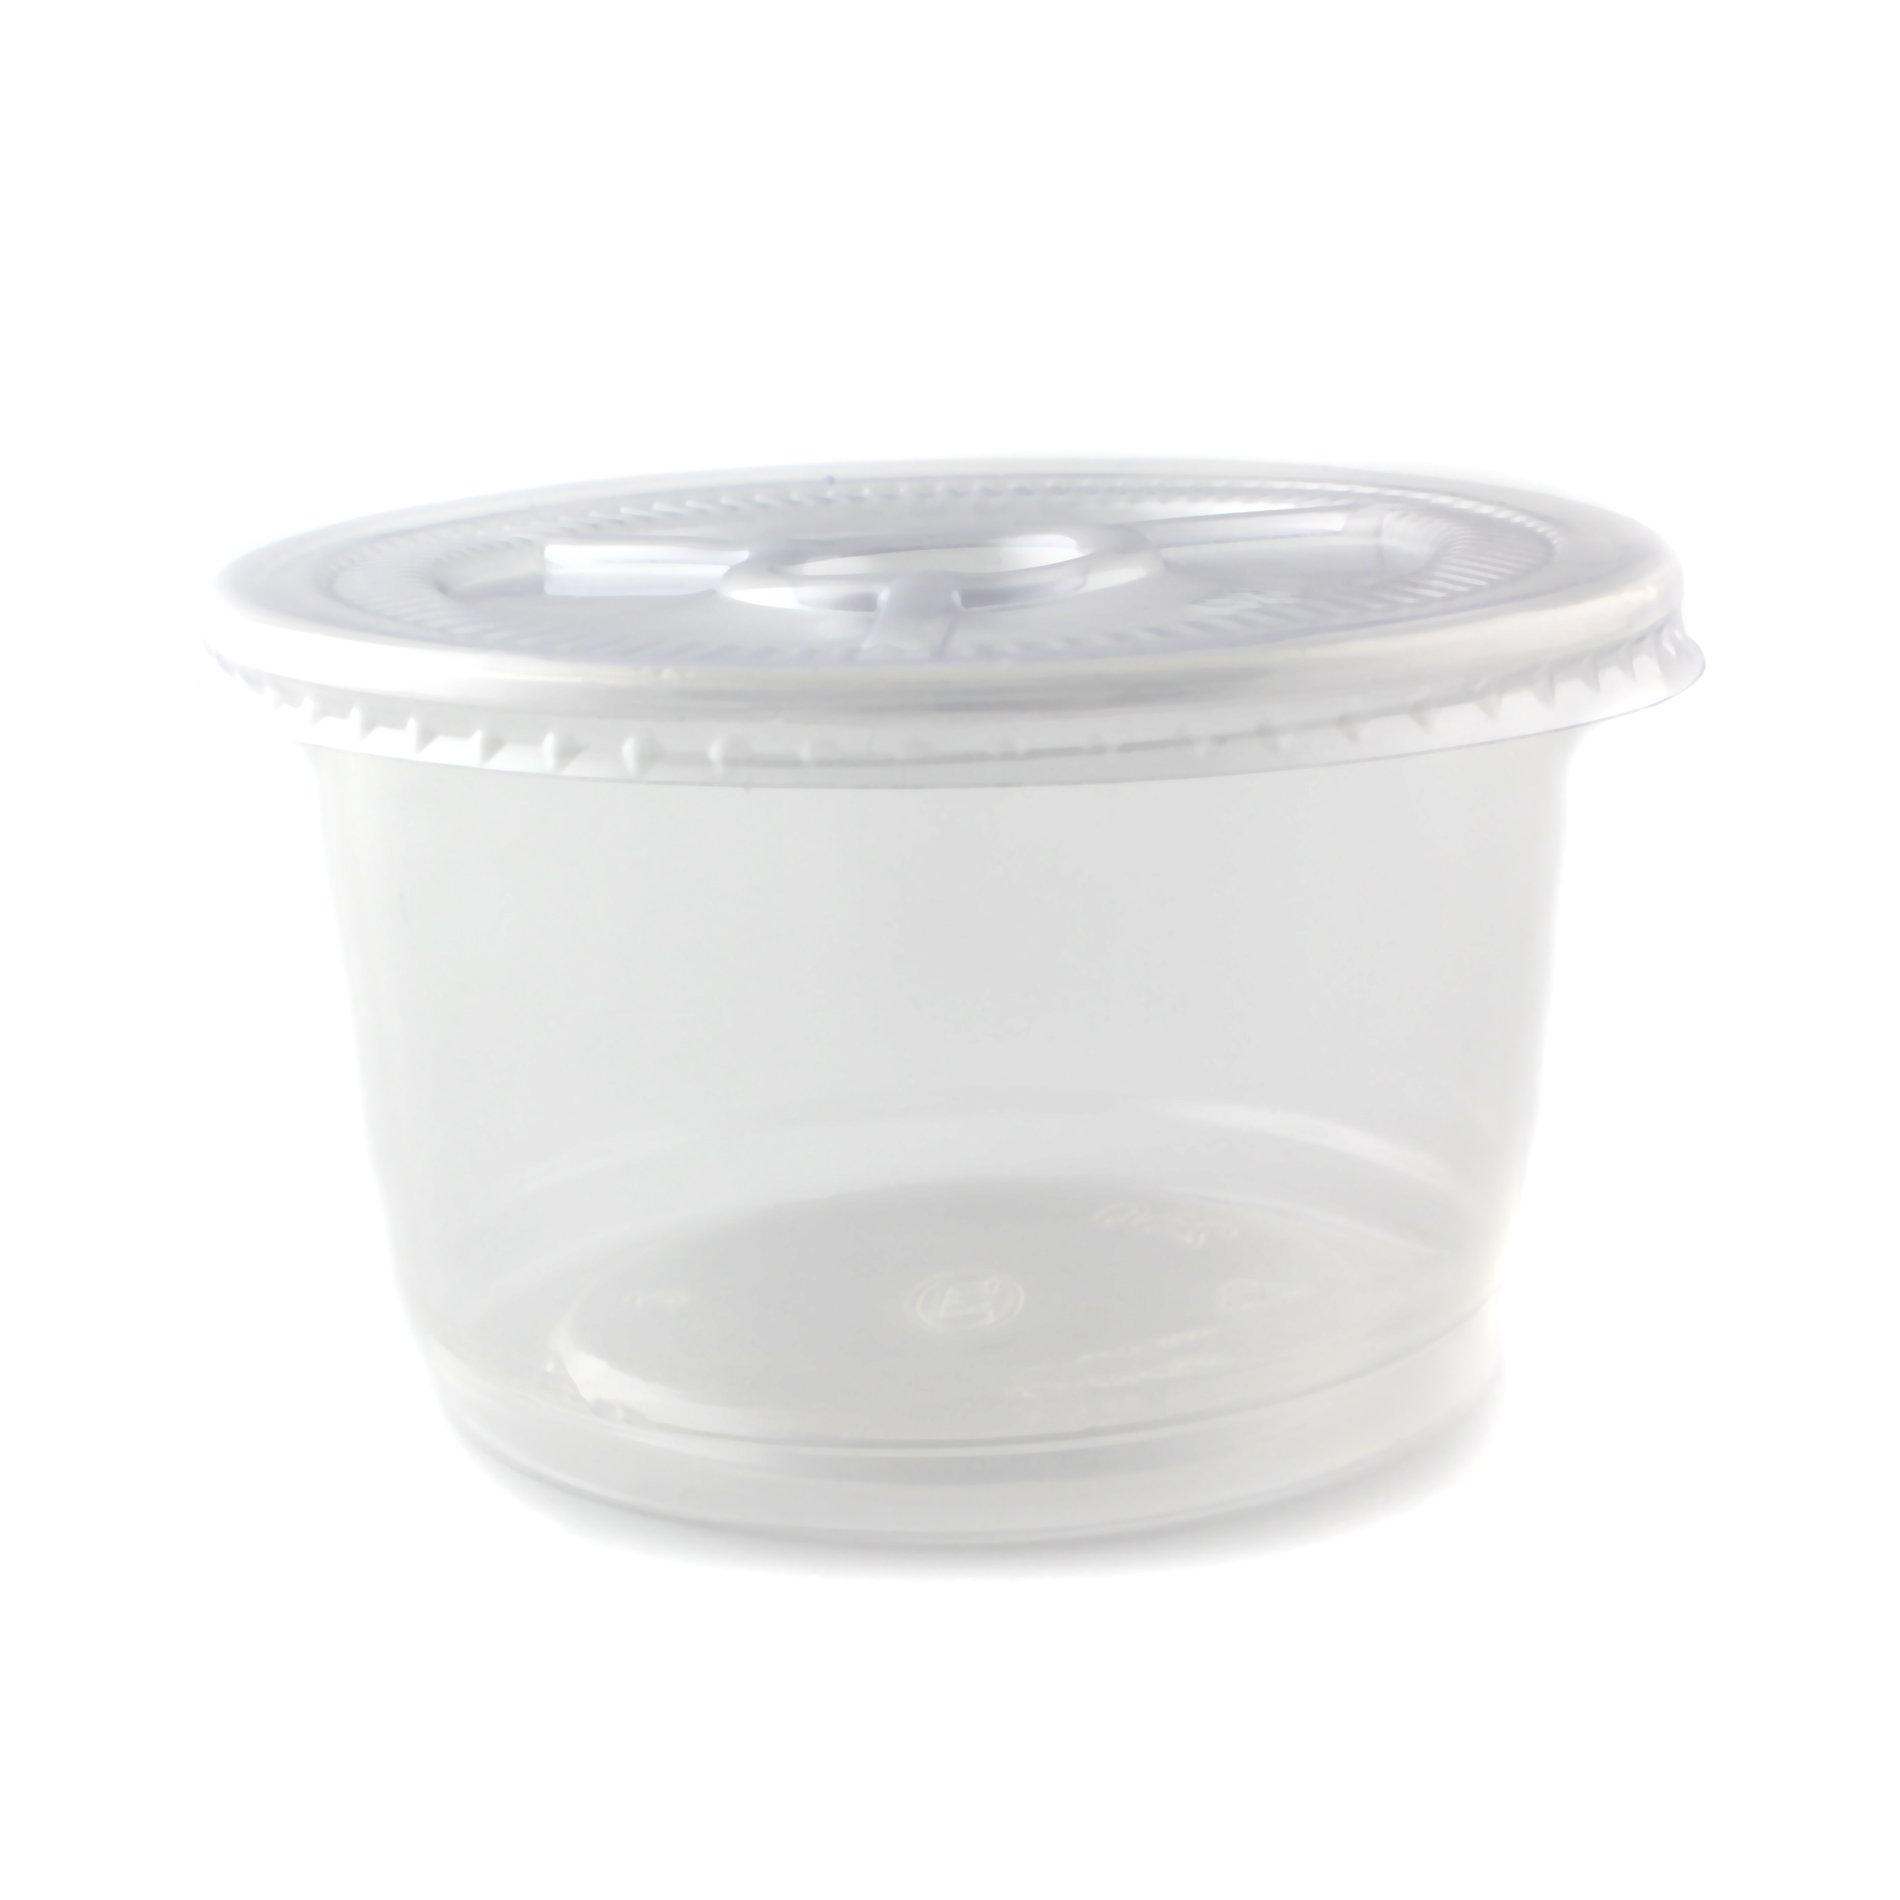 9oz Plastic Round Jello Shot Glasses Souffle Portion Cups with Lid, 100 Count